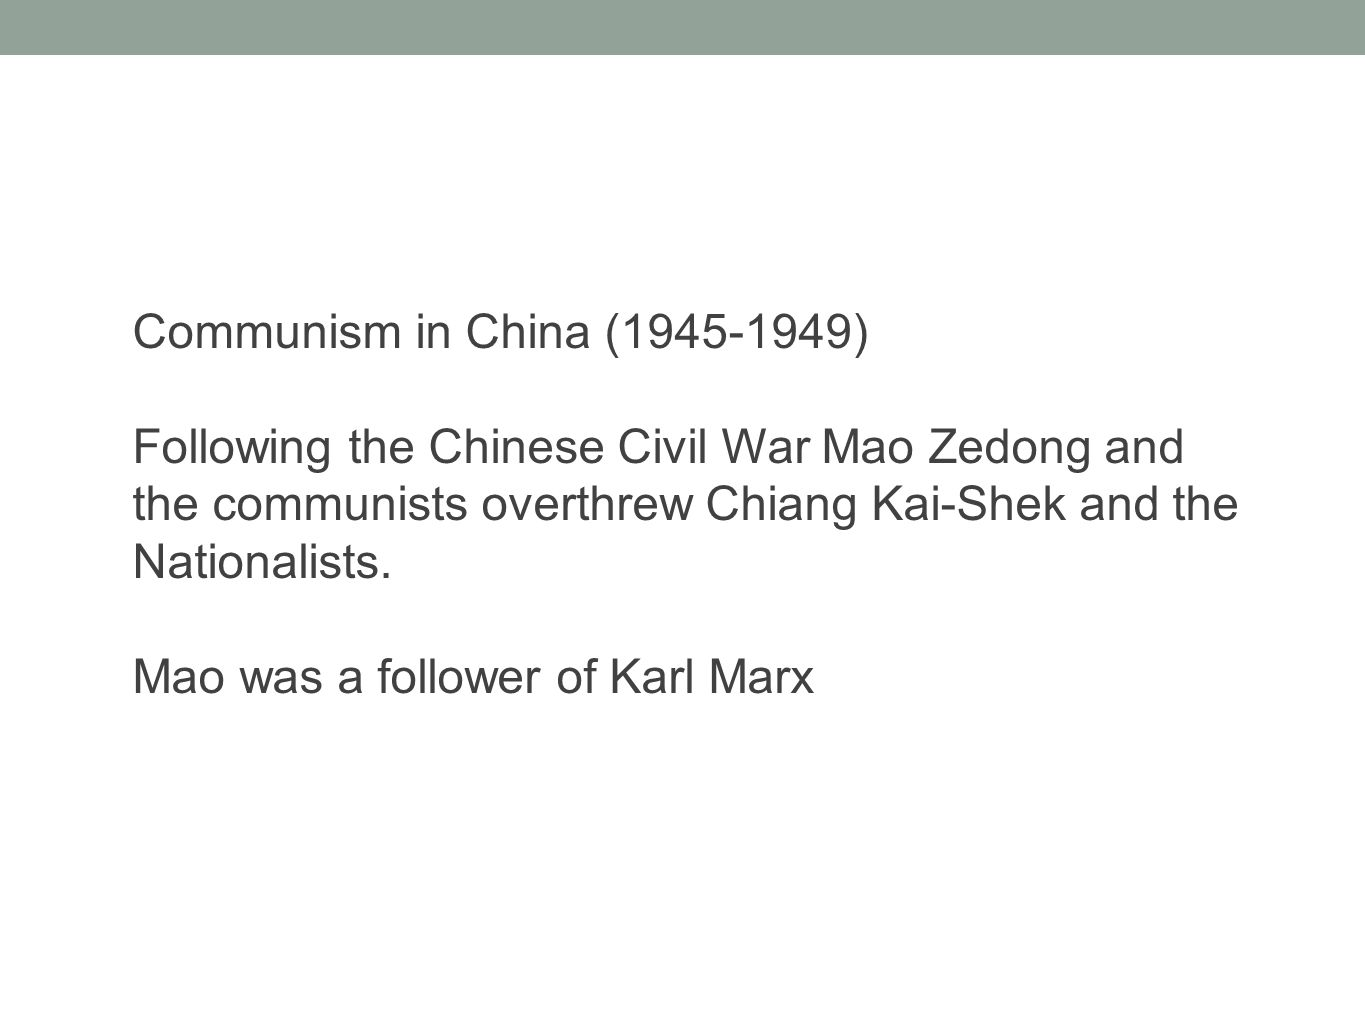 Communism in China (1945-1949) Following the Chinese Civil War Mao Zedong and the communists overthrew Chiang Kai-Shek and the Nationalists. Mao was a